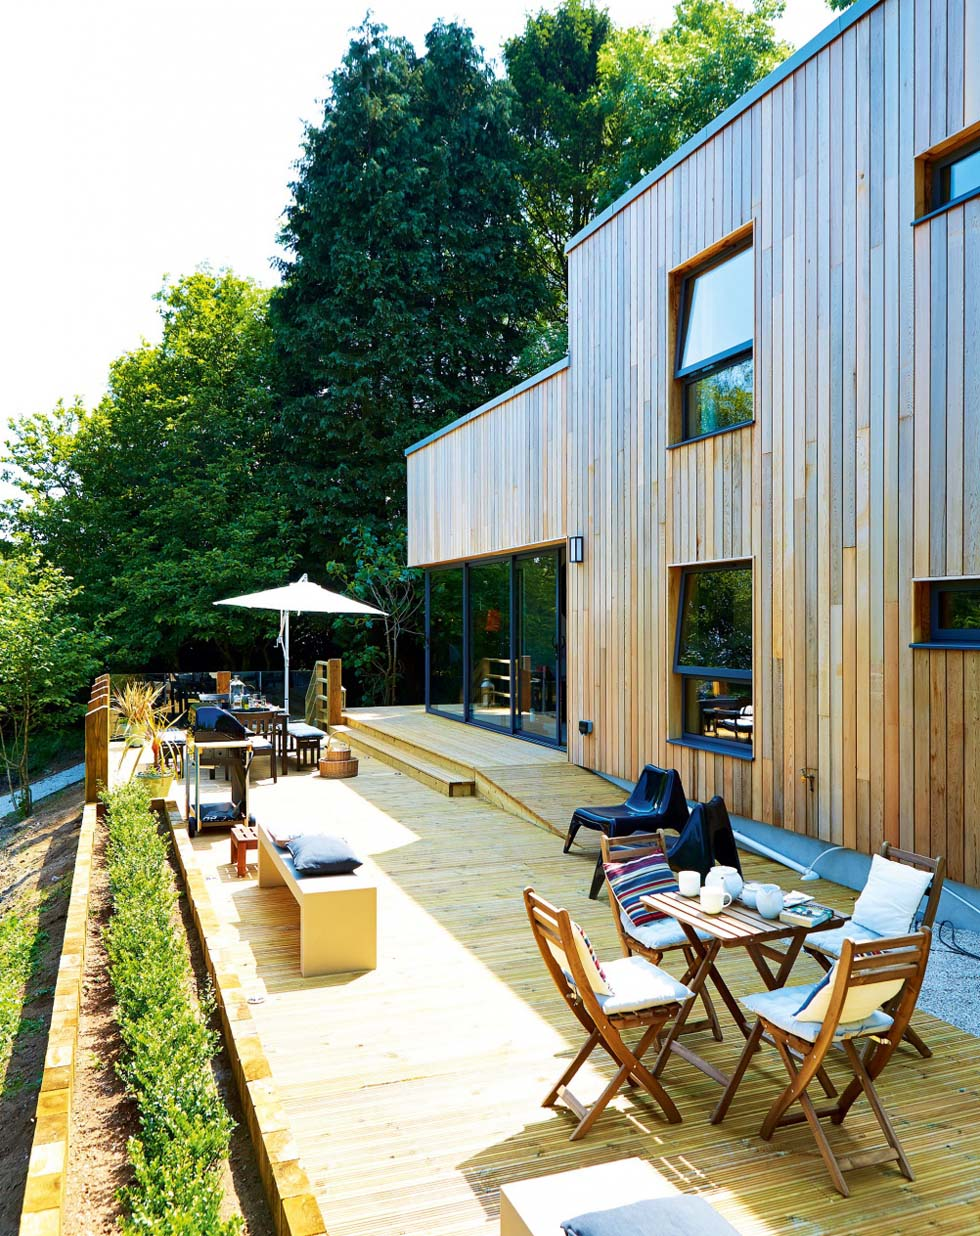 Timber decking at the back of the house